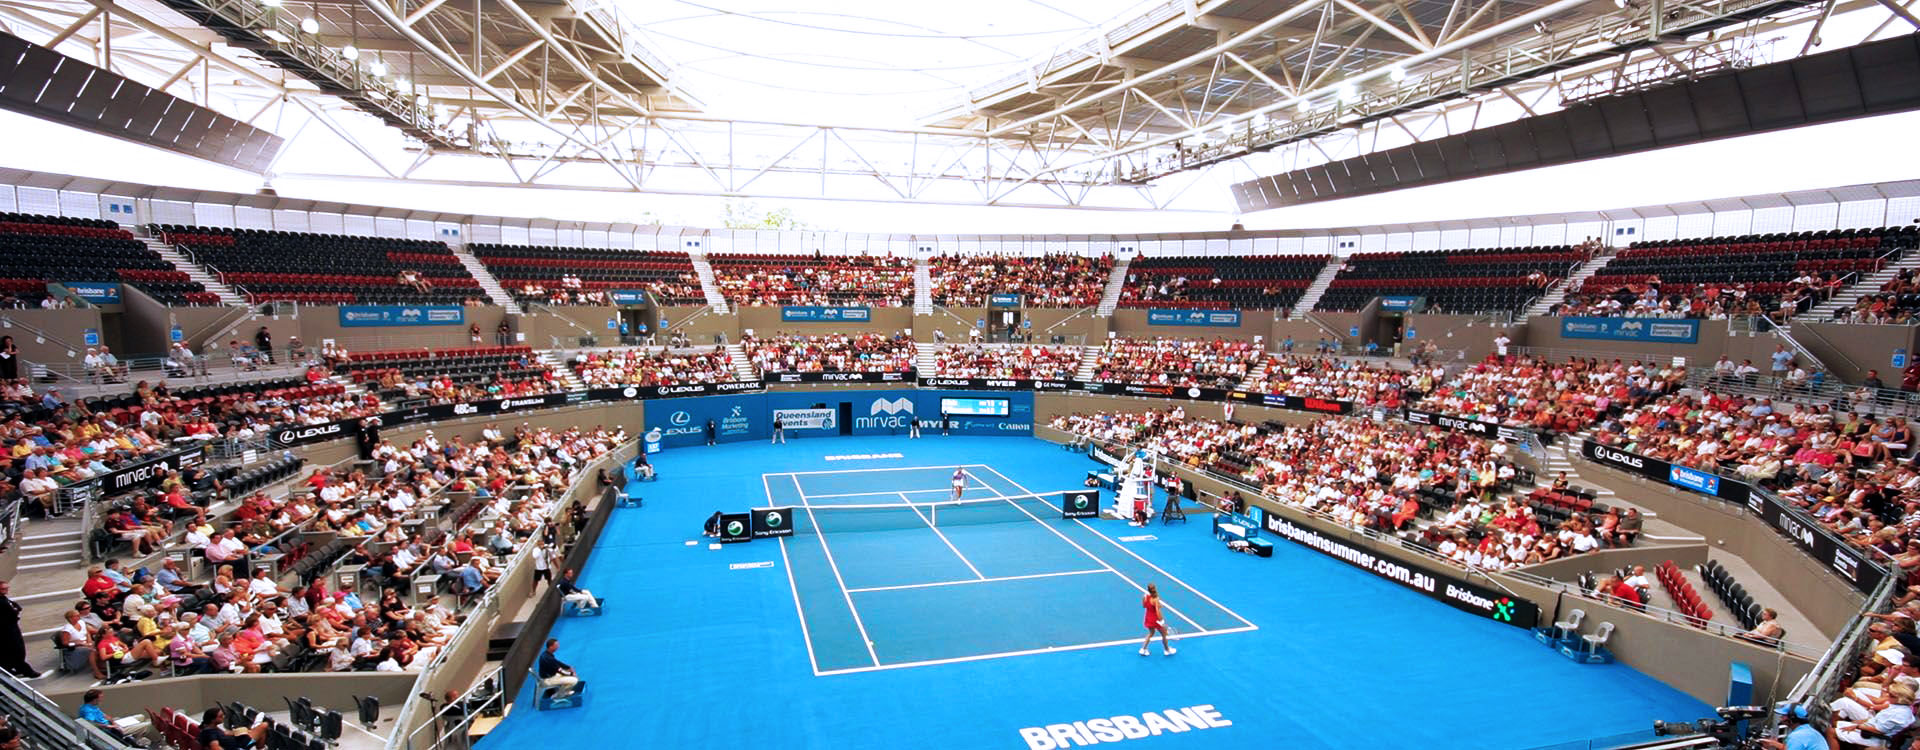 Pat Rafter Arena Centre Court Roof